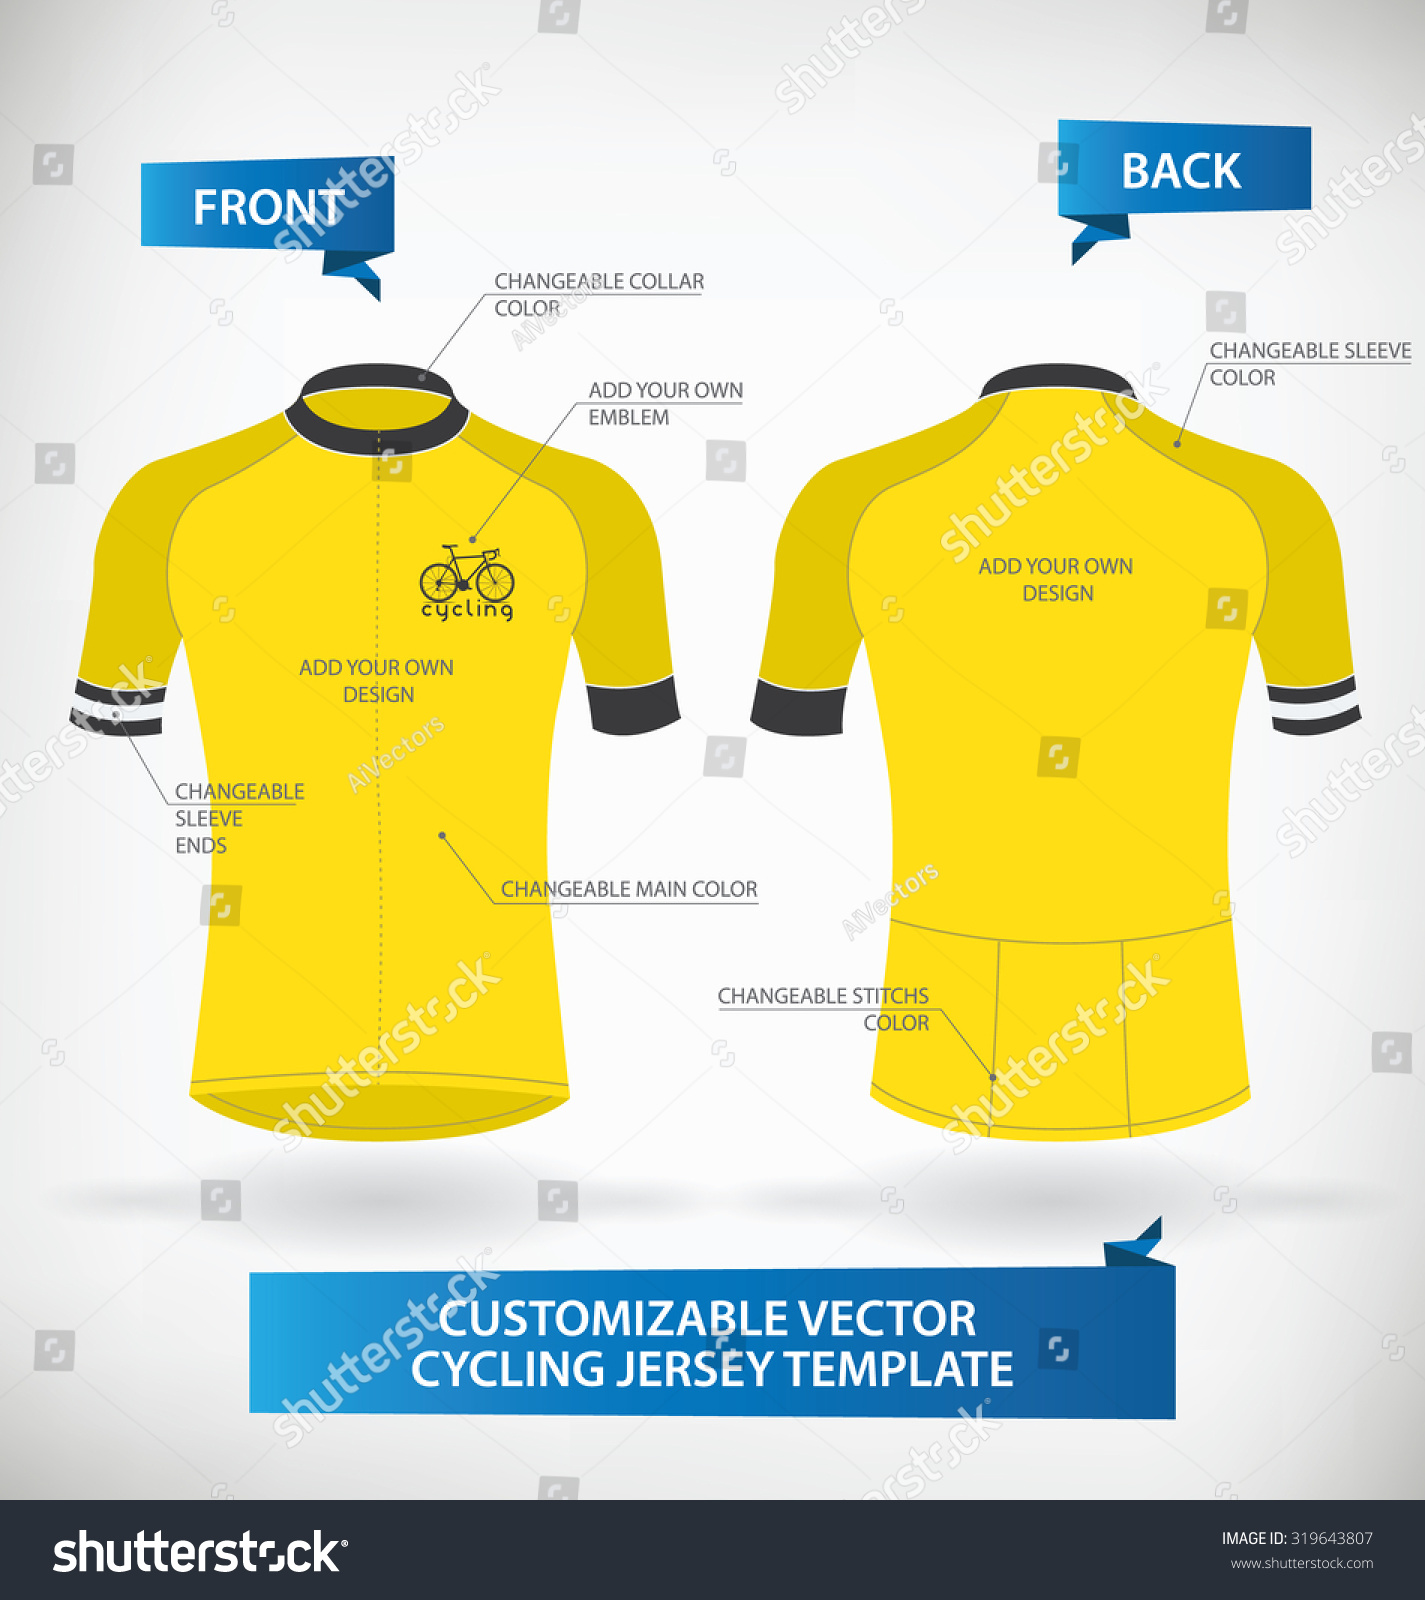 Cycling shirt design your own - Customizable Vector Cycling Jersey Template